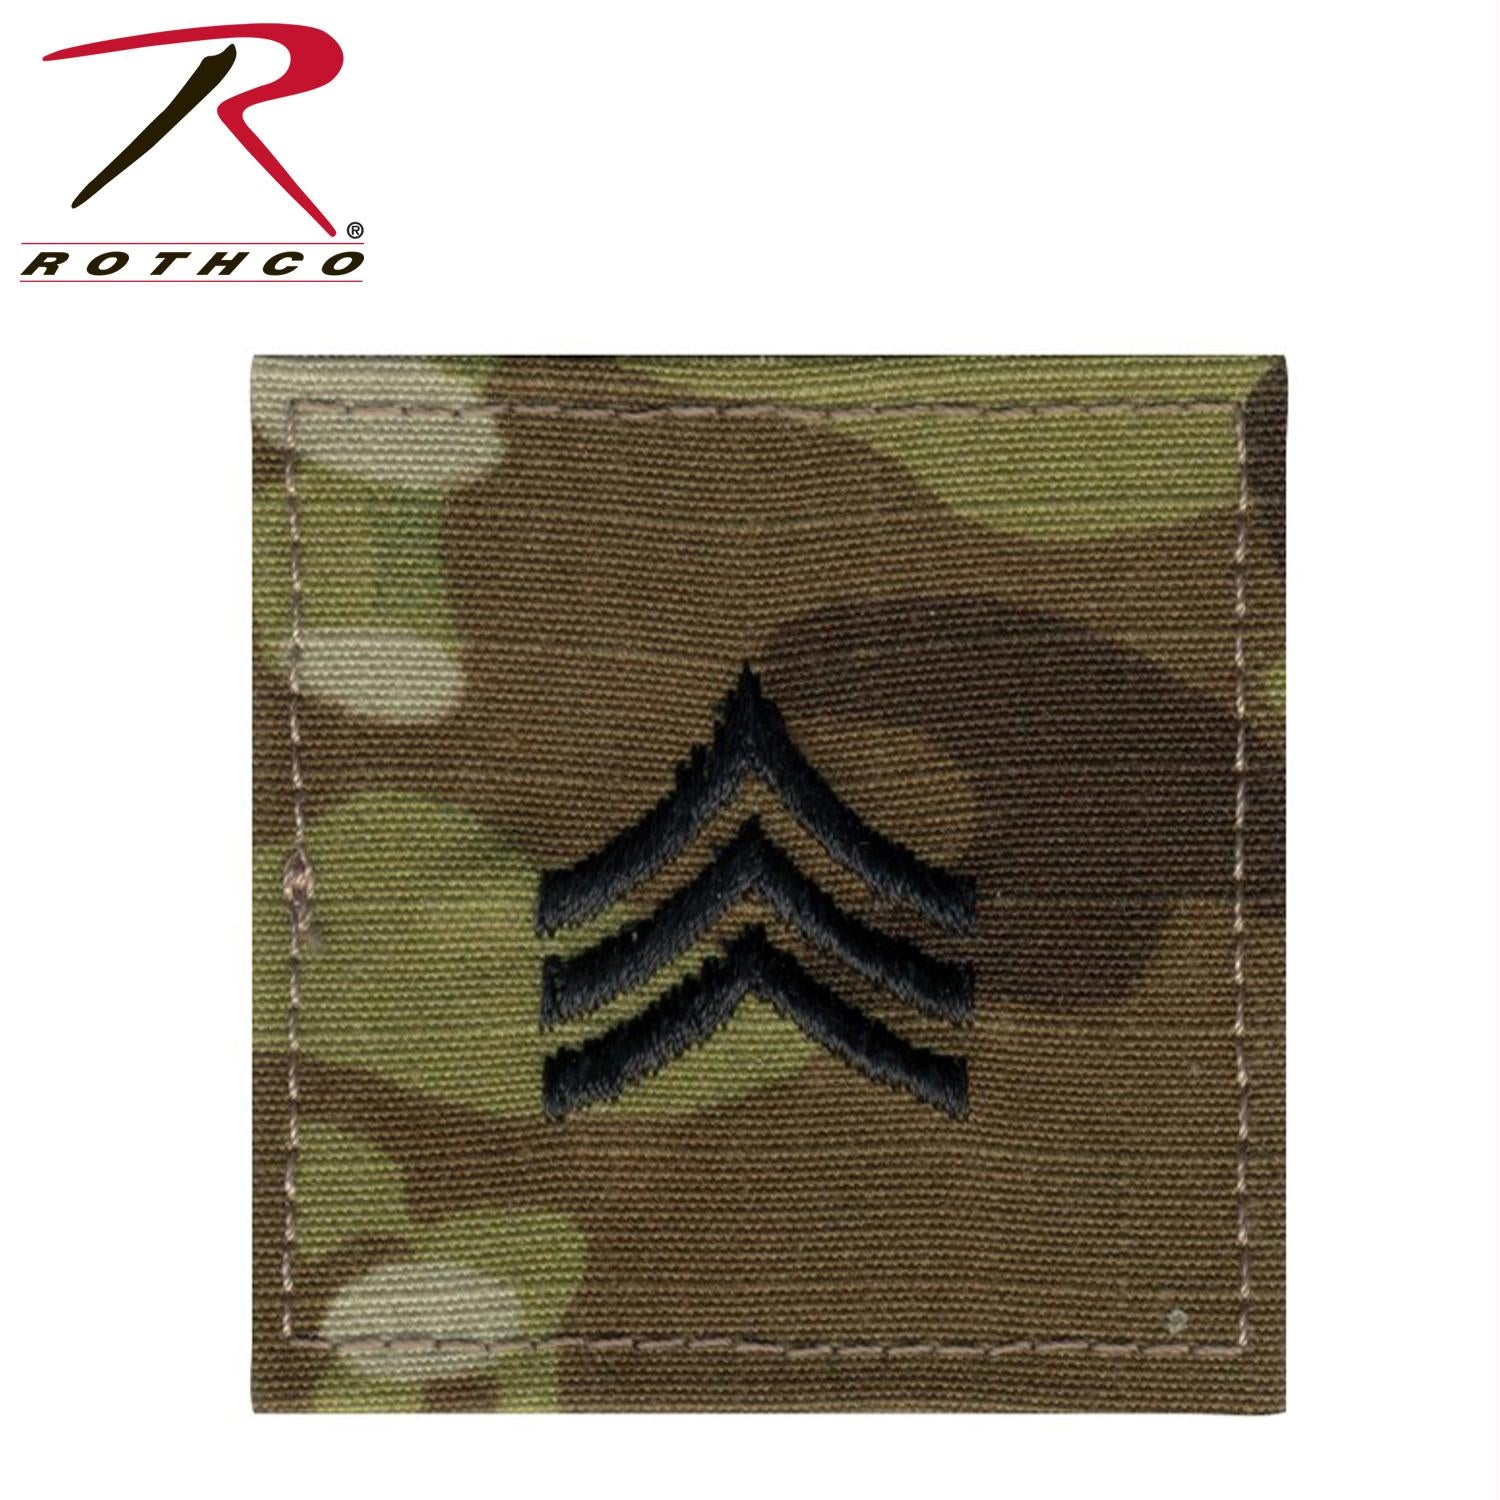 Official U.S. Made Embroidered Rank Insignia - Sergeant - MultiCam